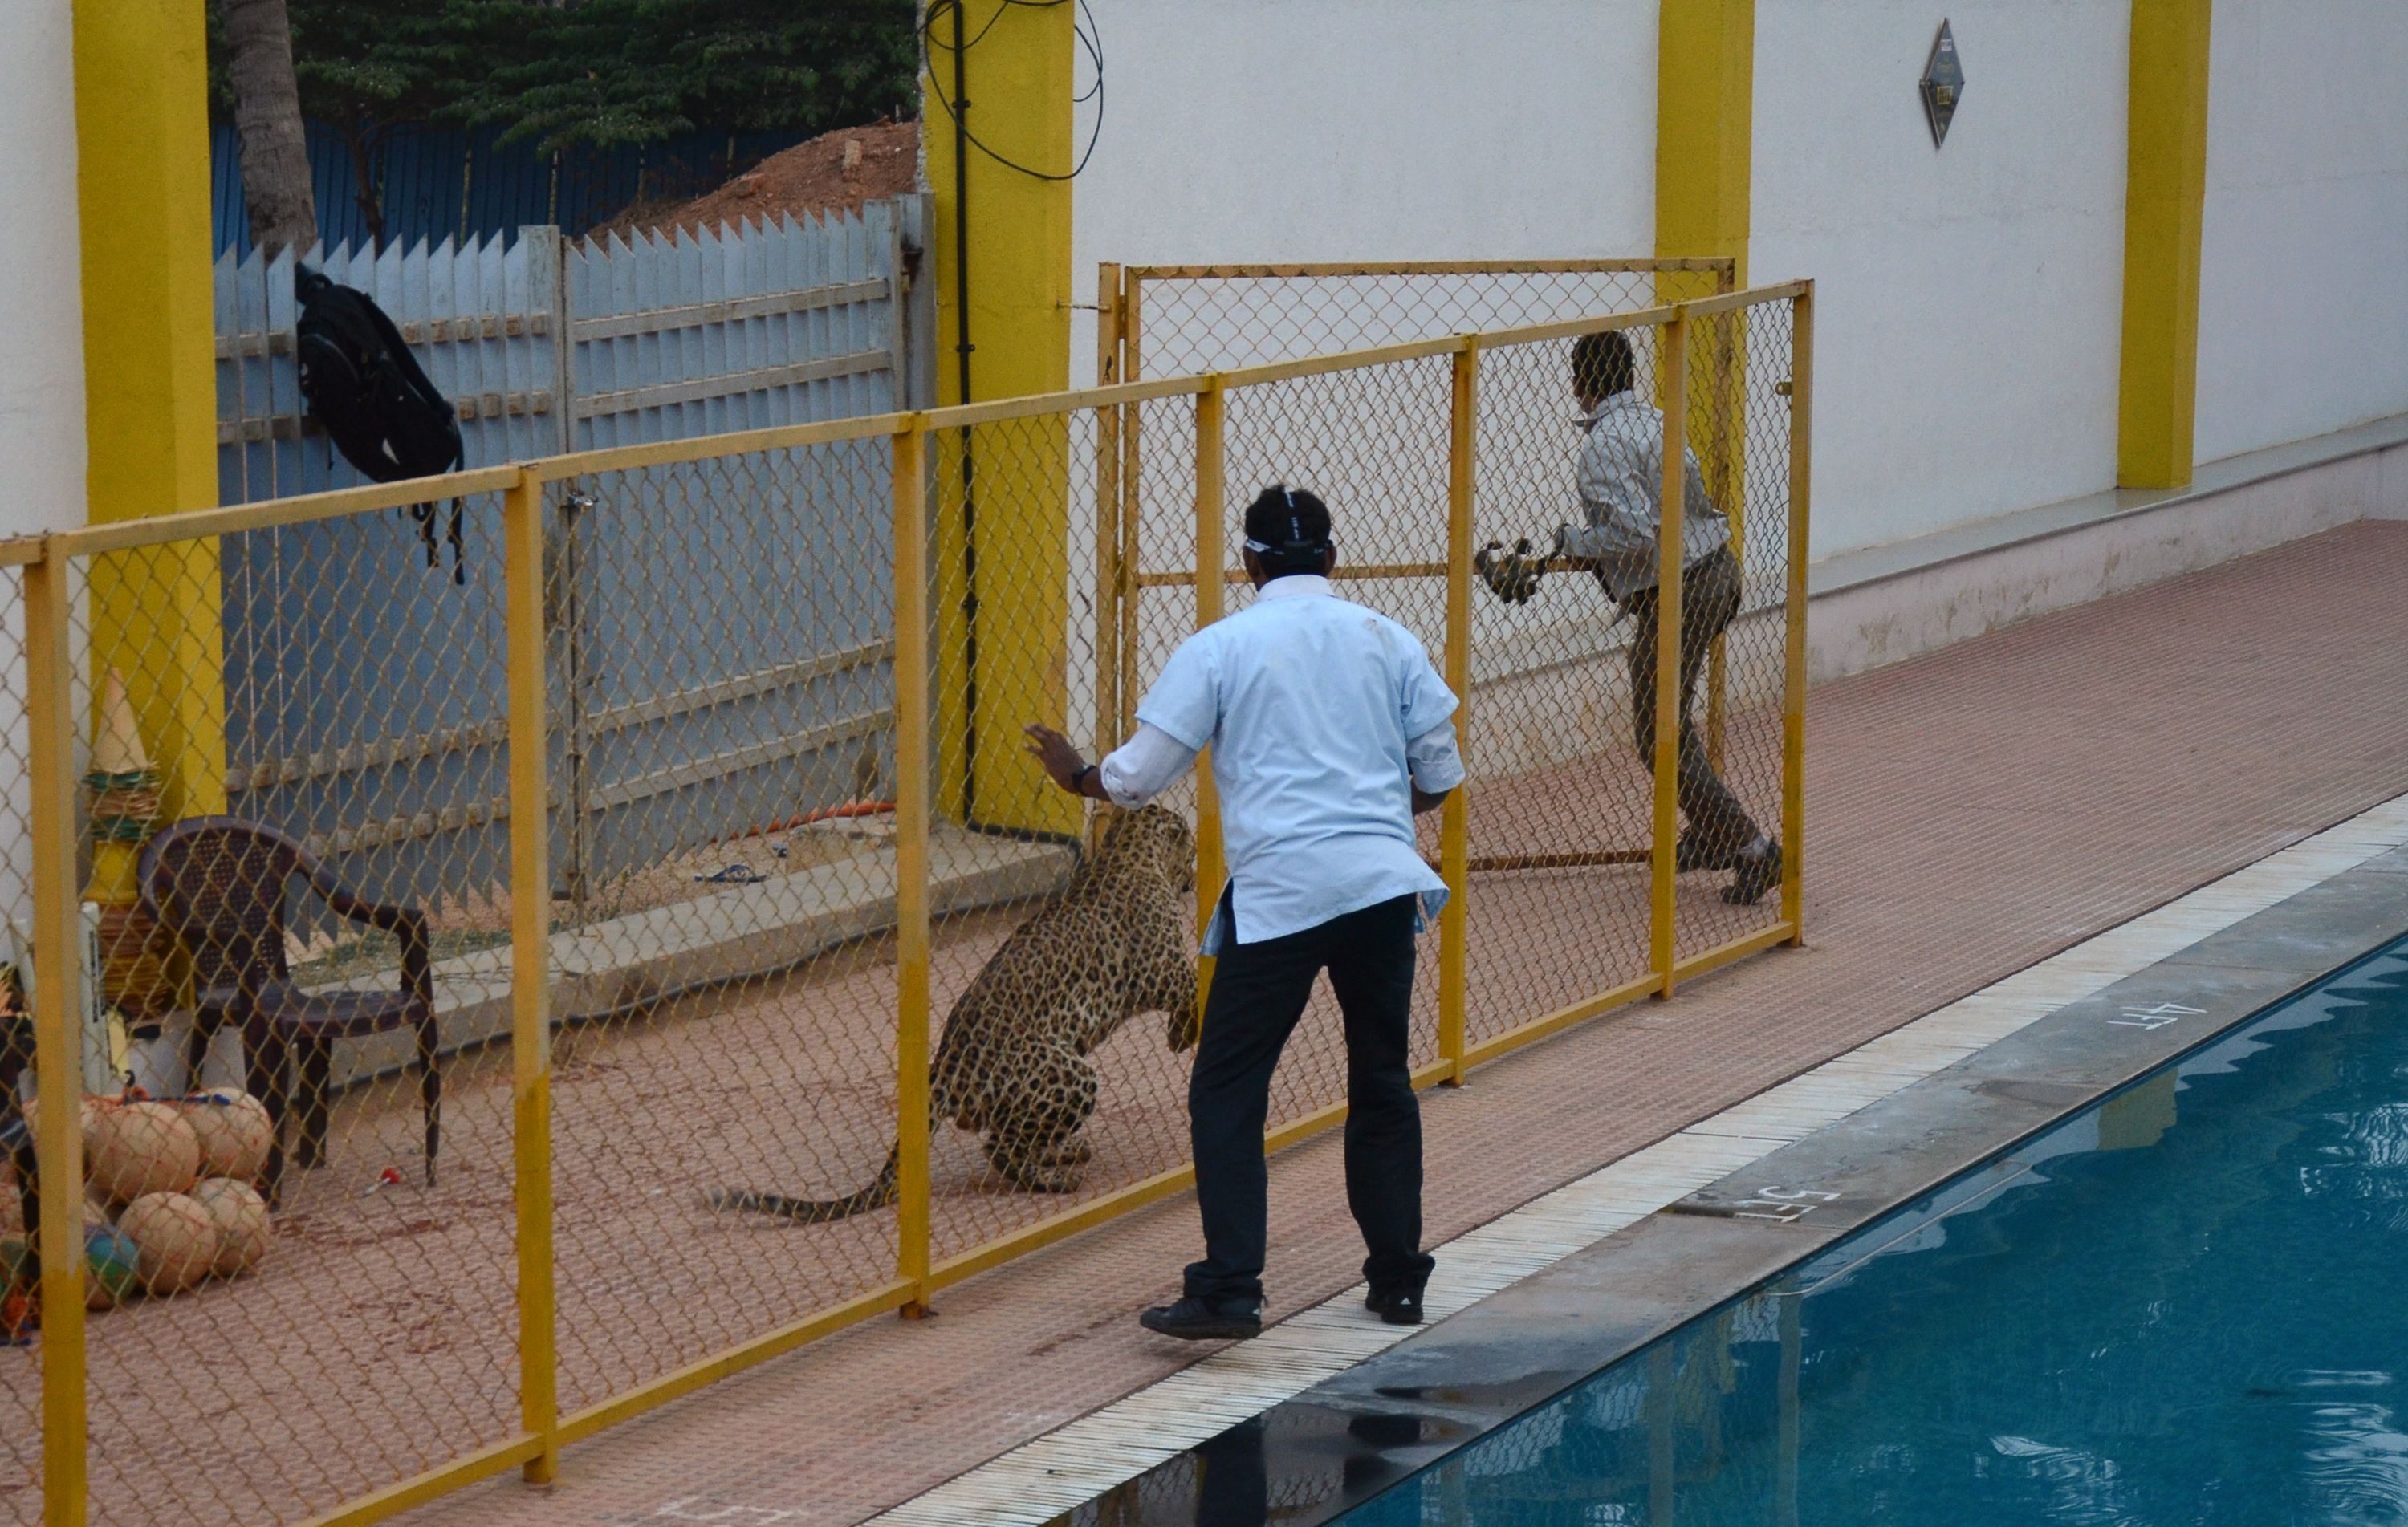 A man identified by Indian media as wildlife conservationist Sanjay Gubbi (R) tries to run away from a leopard at a private school on the outskirts of Bangalore on February 7, 2016. The animal reportedly injured six people before being tranquilized. AFP PHOTO / AFP / STR        (Photo credit should read STR/AFP/Getty Images)